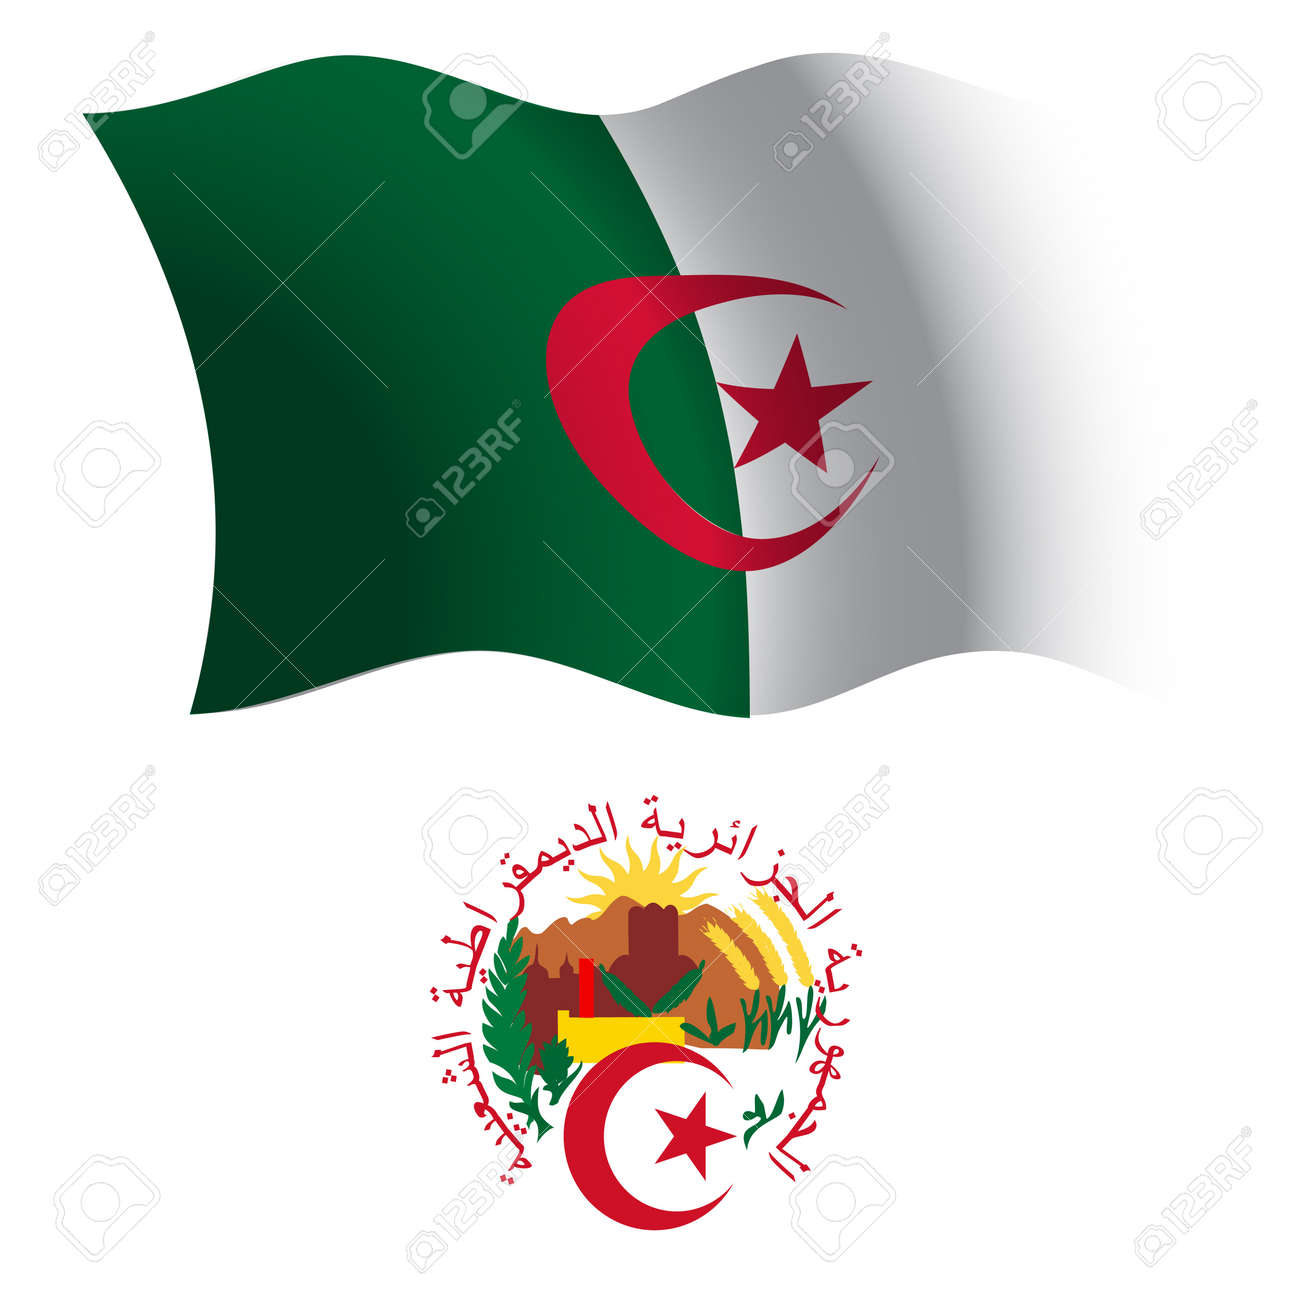 algeria wavy flag and coat of arms against white background, vector art illustration, image contains transparency Stock Vector - 21366028